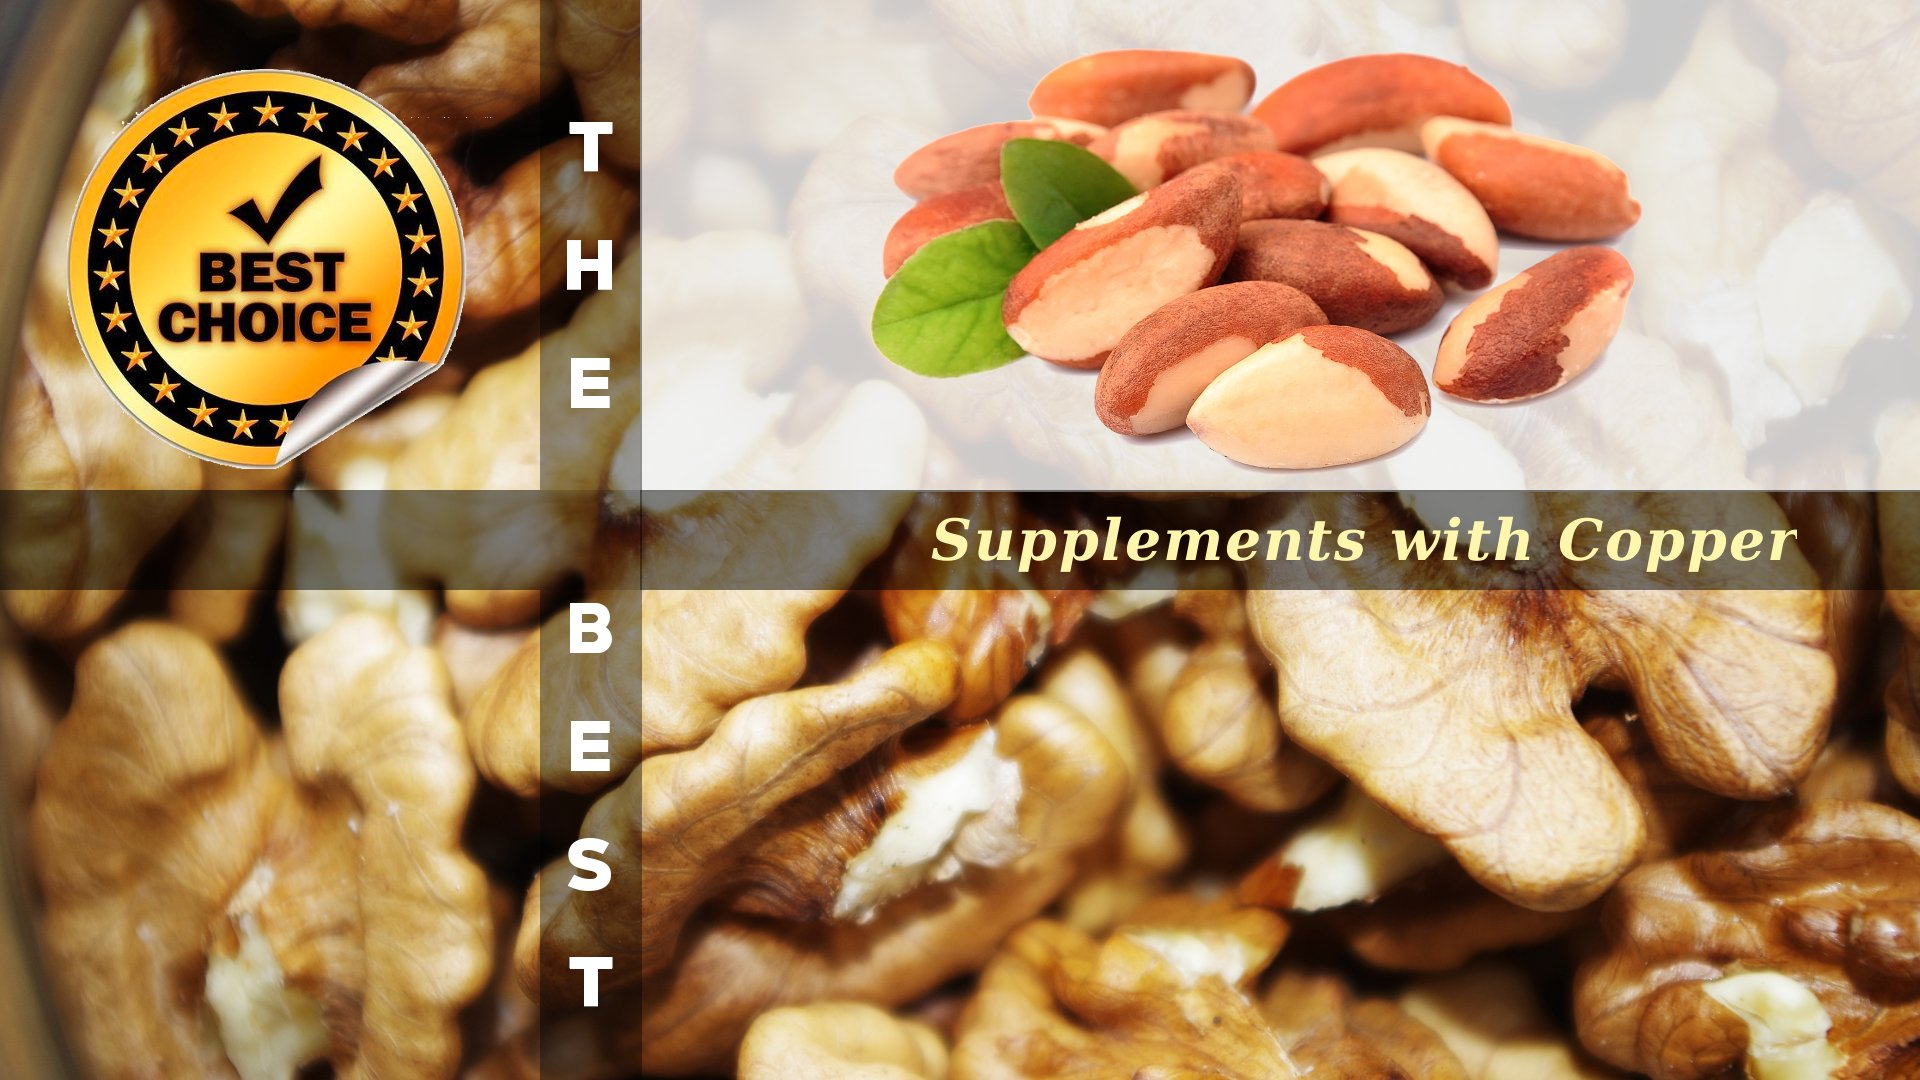 The Supplements with Copper